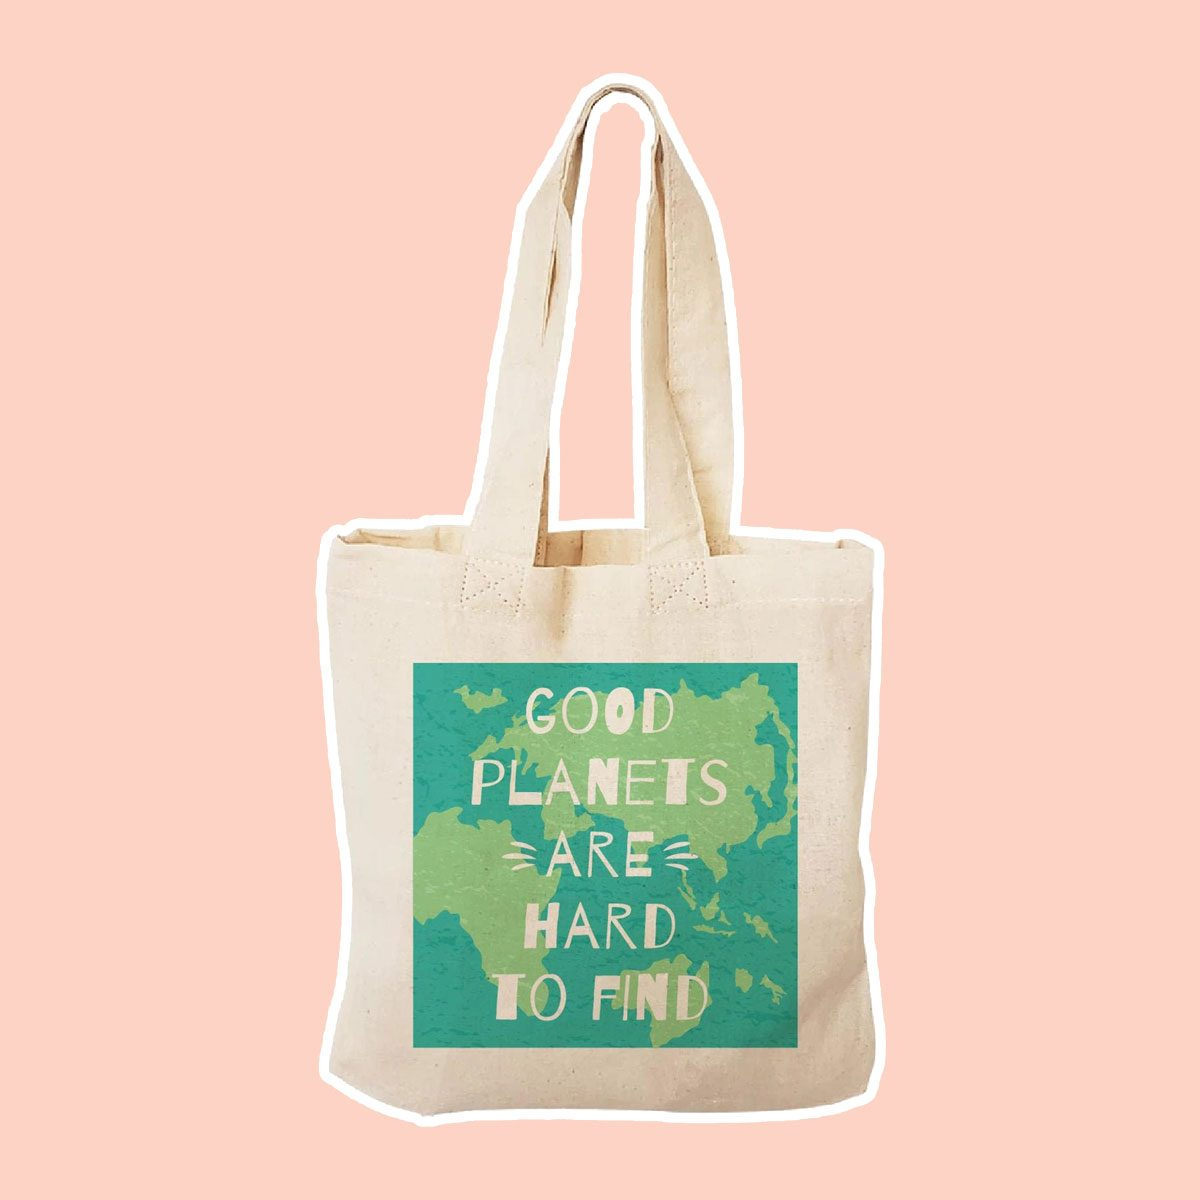 Good Planets Are Hard To Find Tote Bag, Grocery Bag, Grocery Tote, Tote Bag, Bag, Go Green Tote Bag, Earth Day, Earth Day Tote Bag, Earth